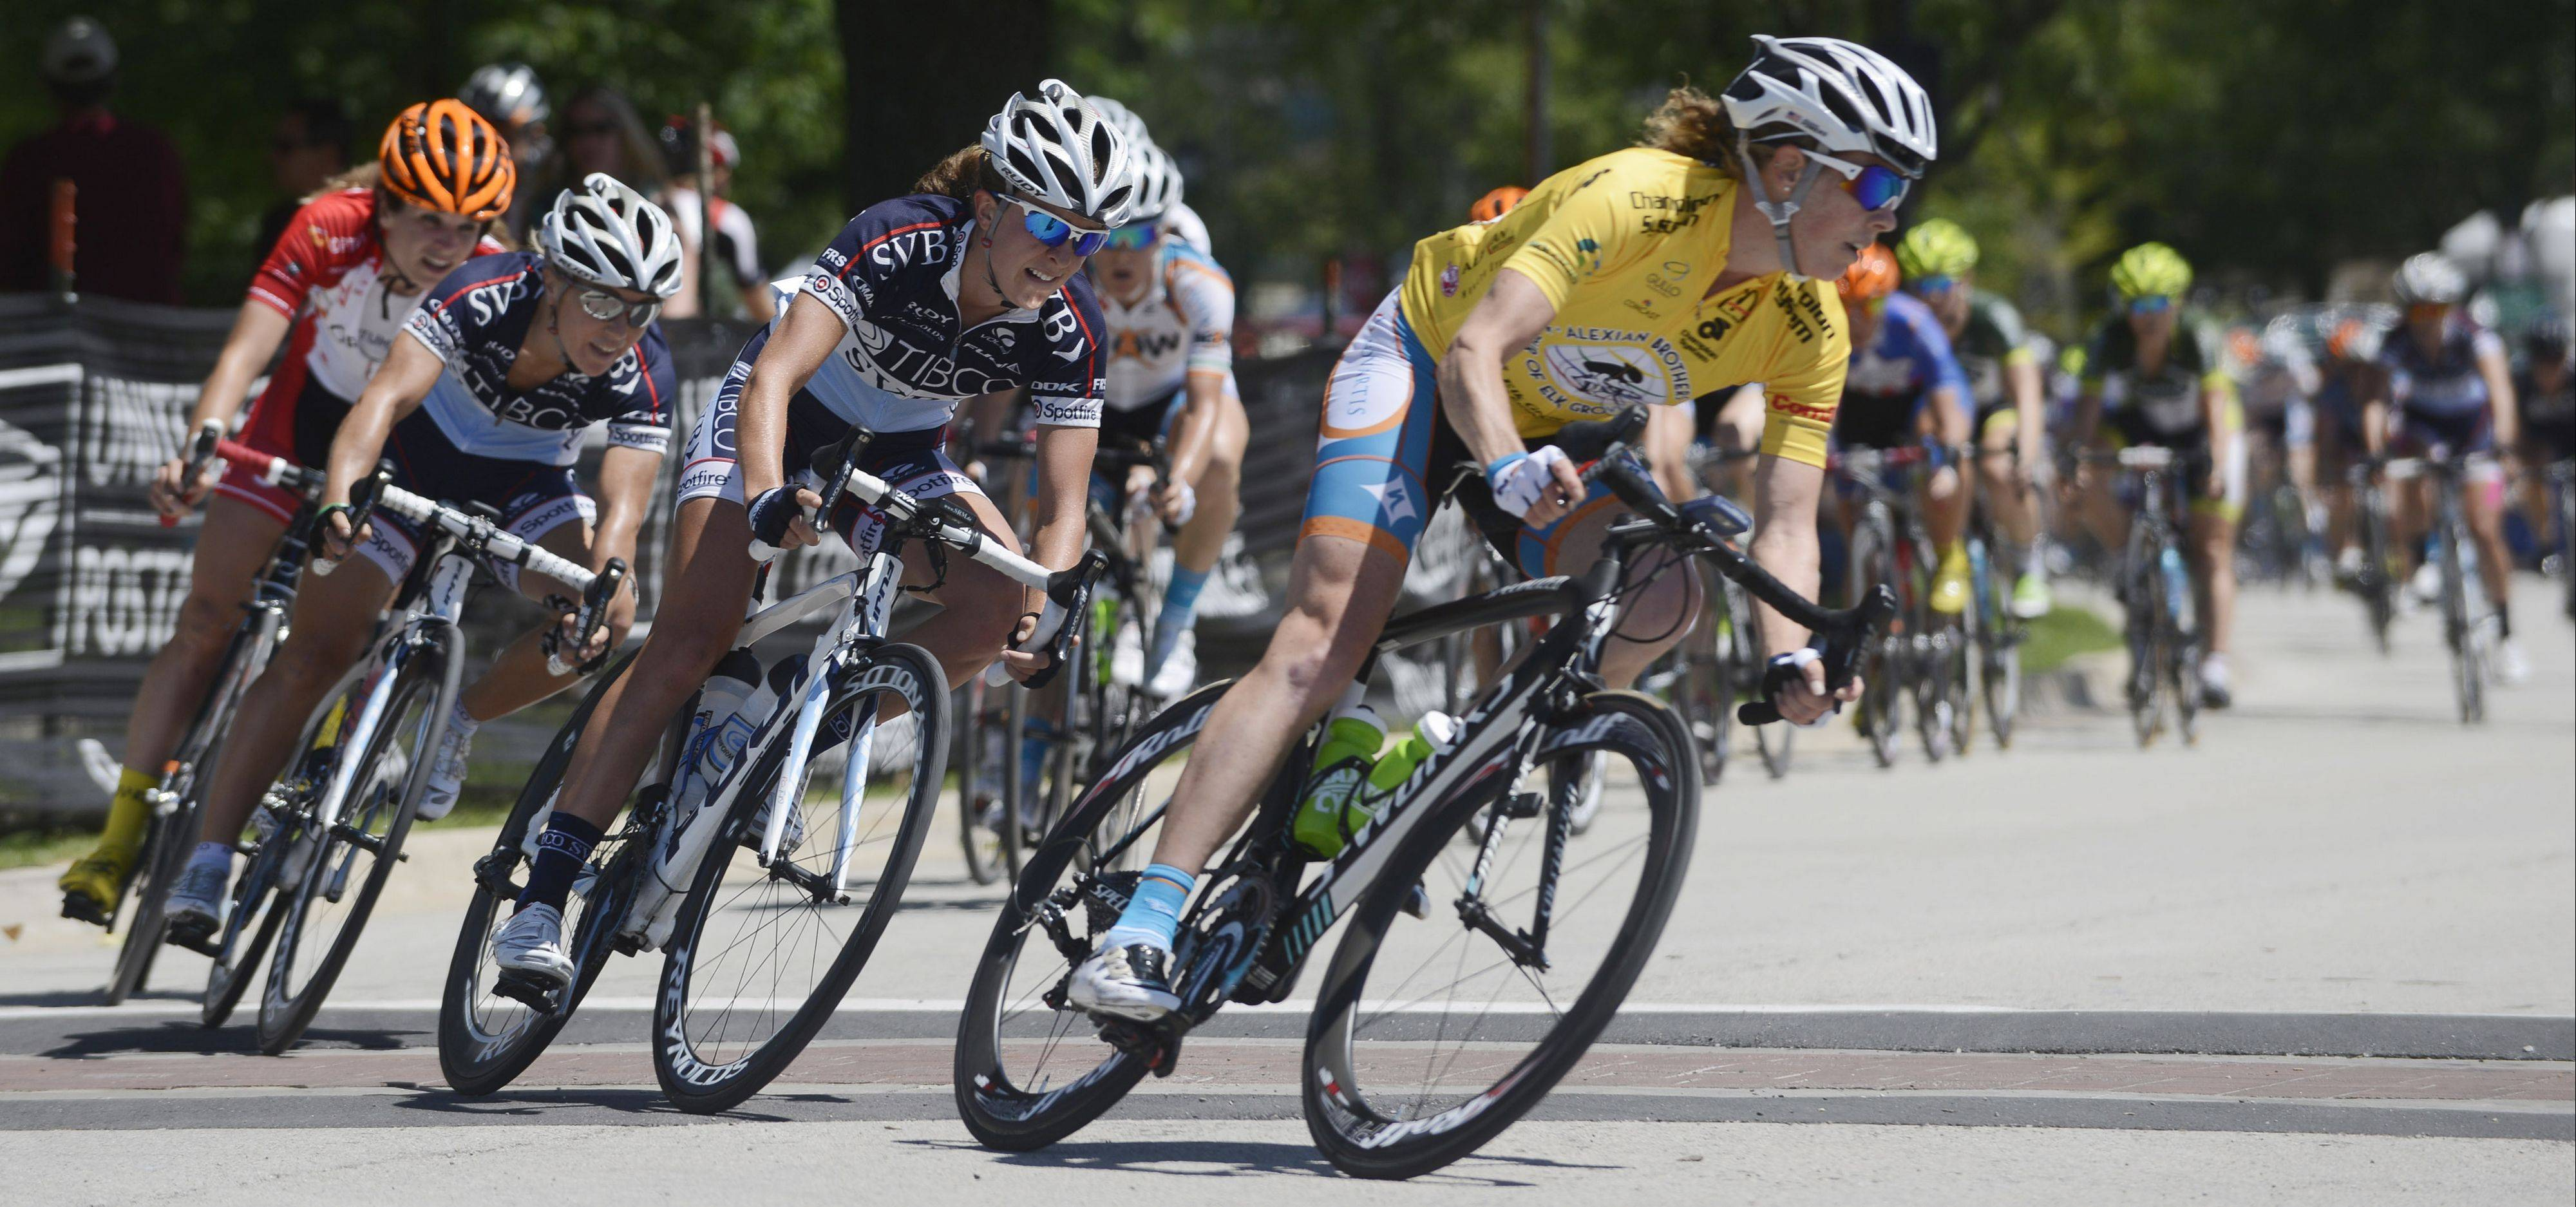 Nearly 60 riders compete Saturday in stage two of the women's pro three-day, three-stage race, a 45.3-mile criterium, at the Tour of Elk Grove.